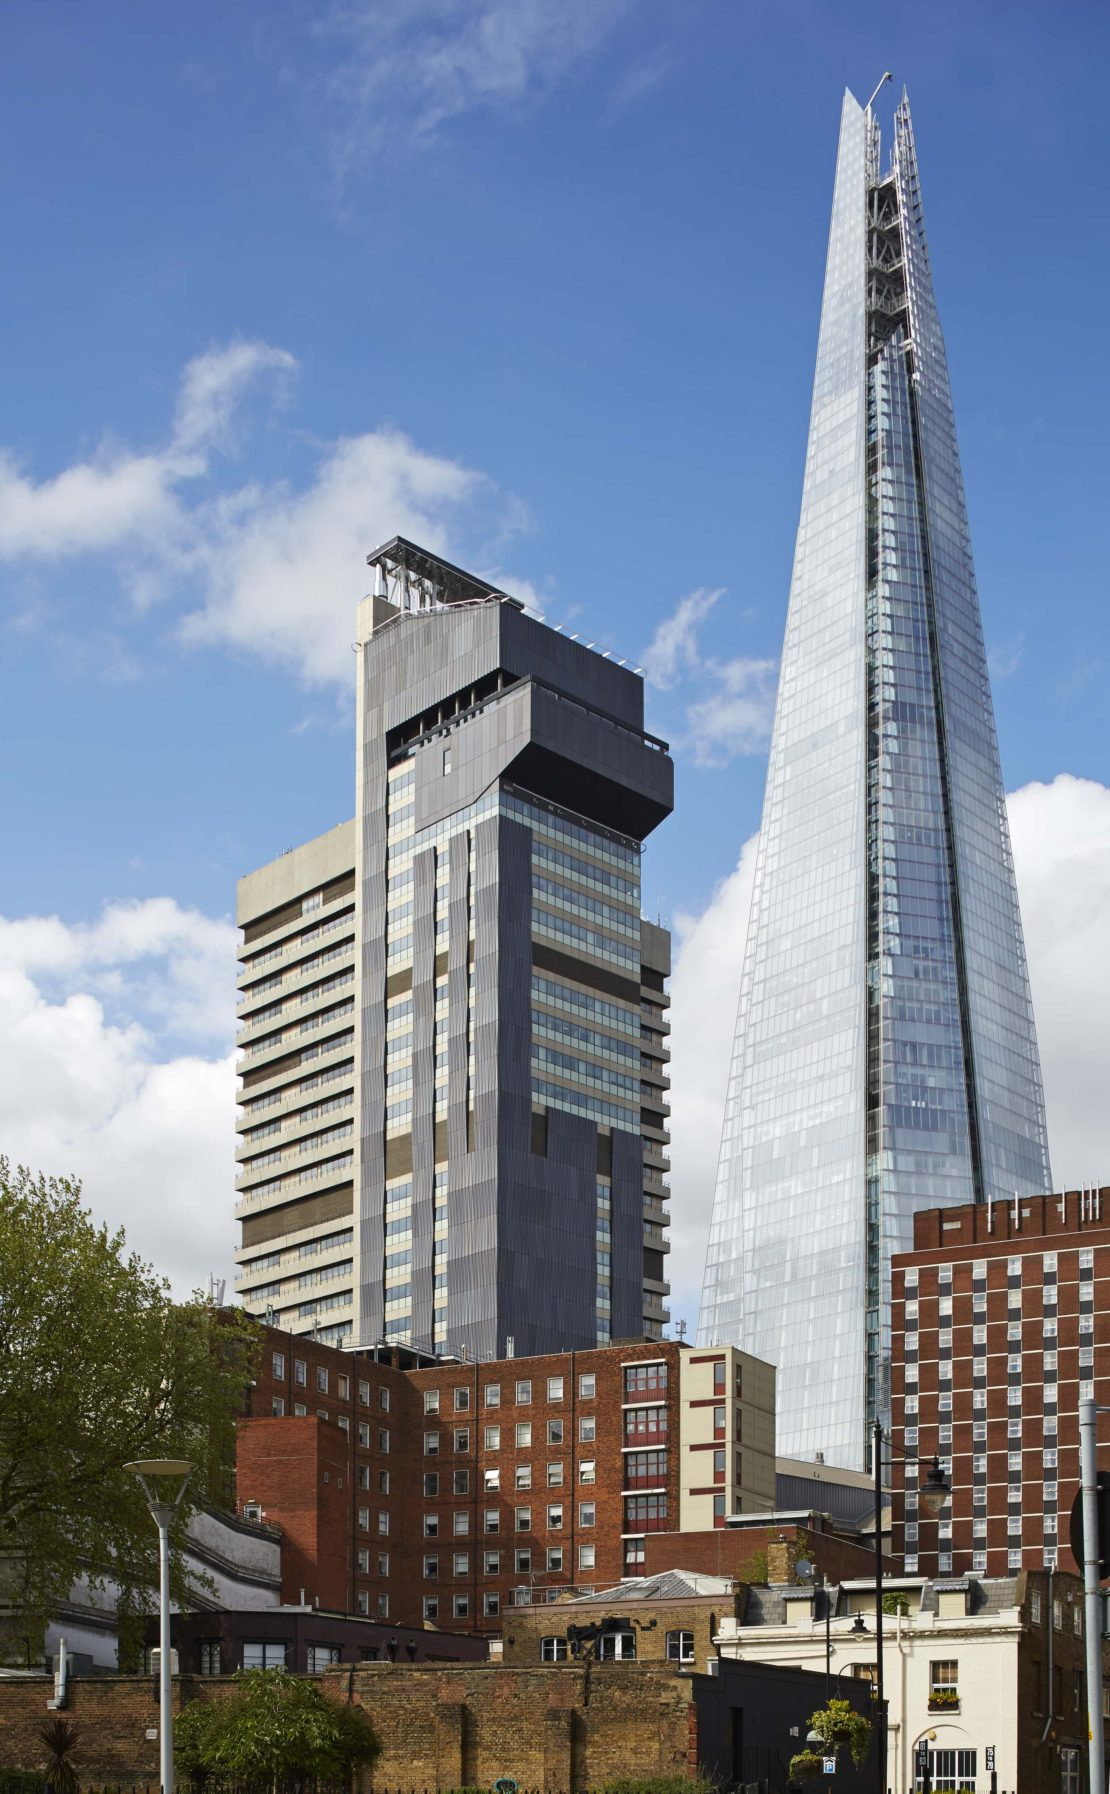 Guy's Tower featured in NLA's 'Smarter London' Exhibition